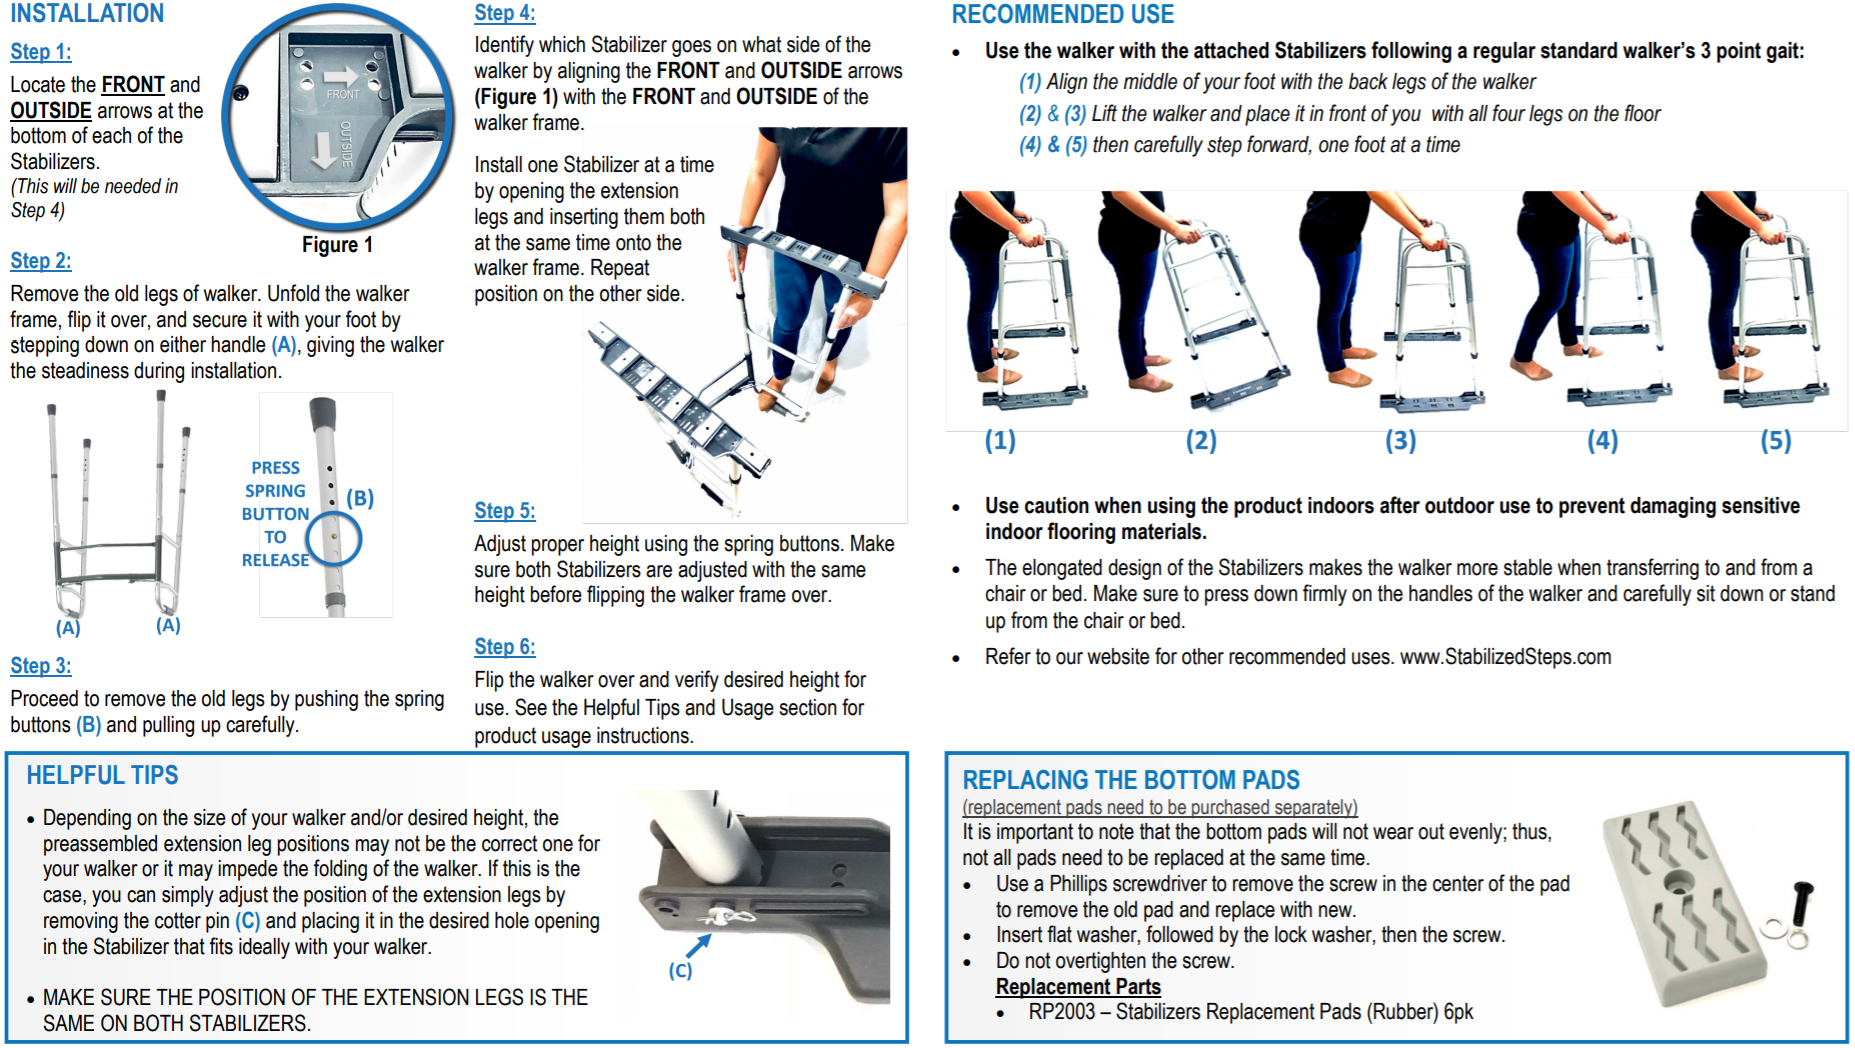 Stabilized Steps - Stabilizer Attachment SG1002. User Guide. Best tool for stability and fall prevention